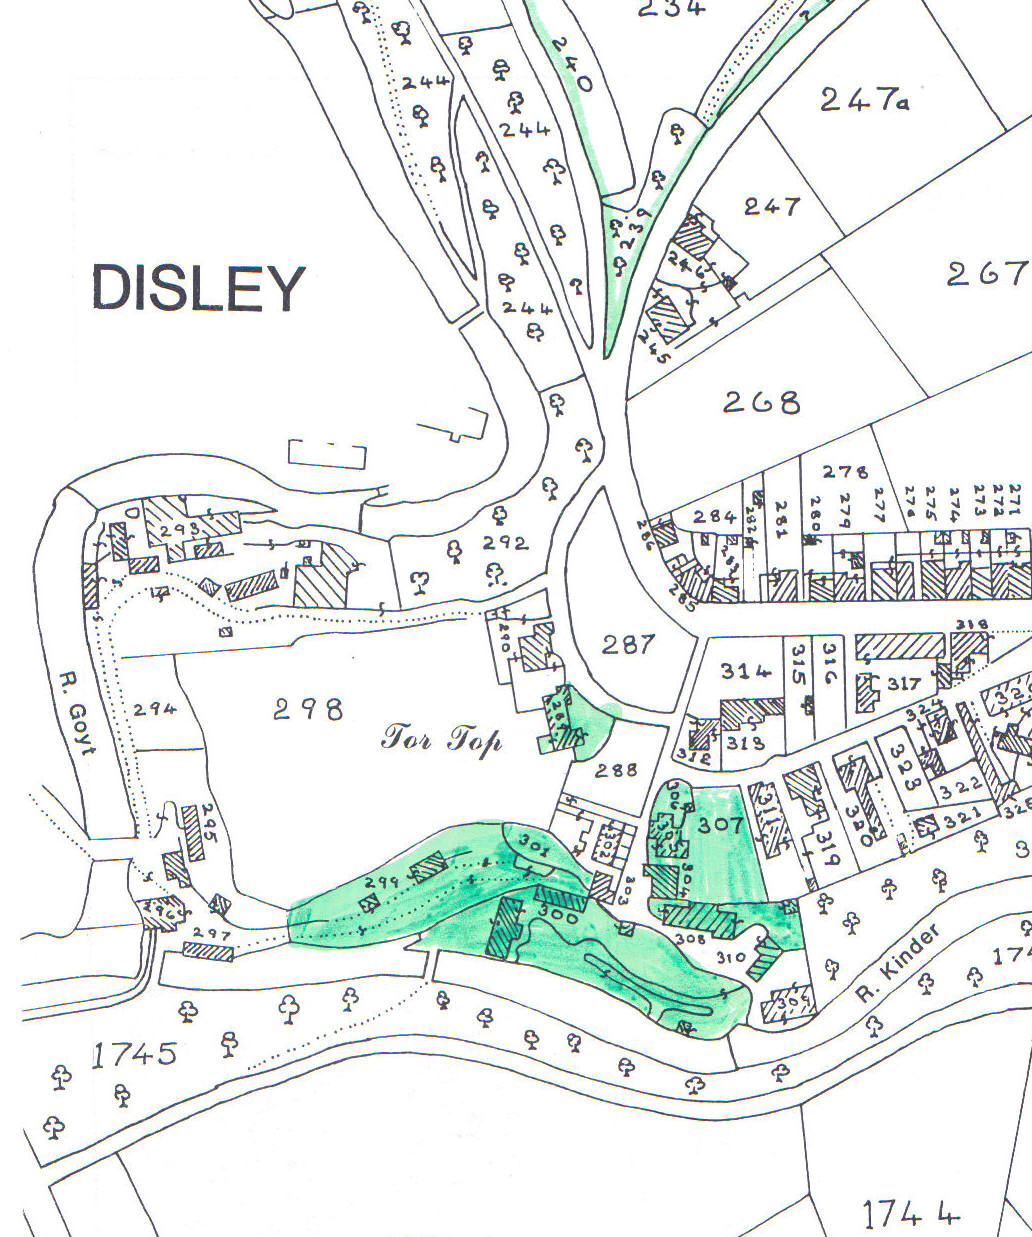 Barnes family holdings in the town centre (in green)